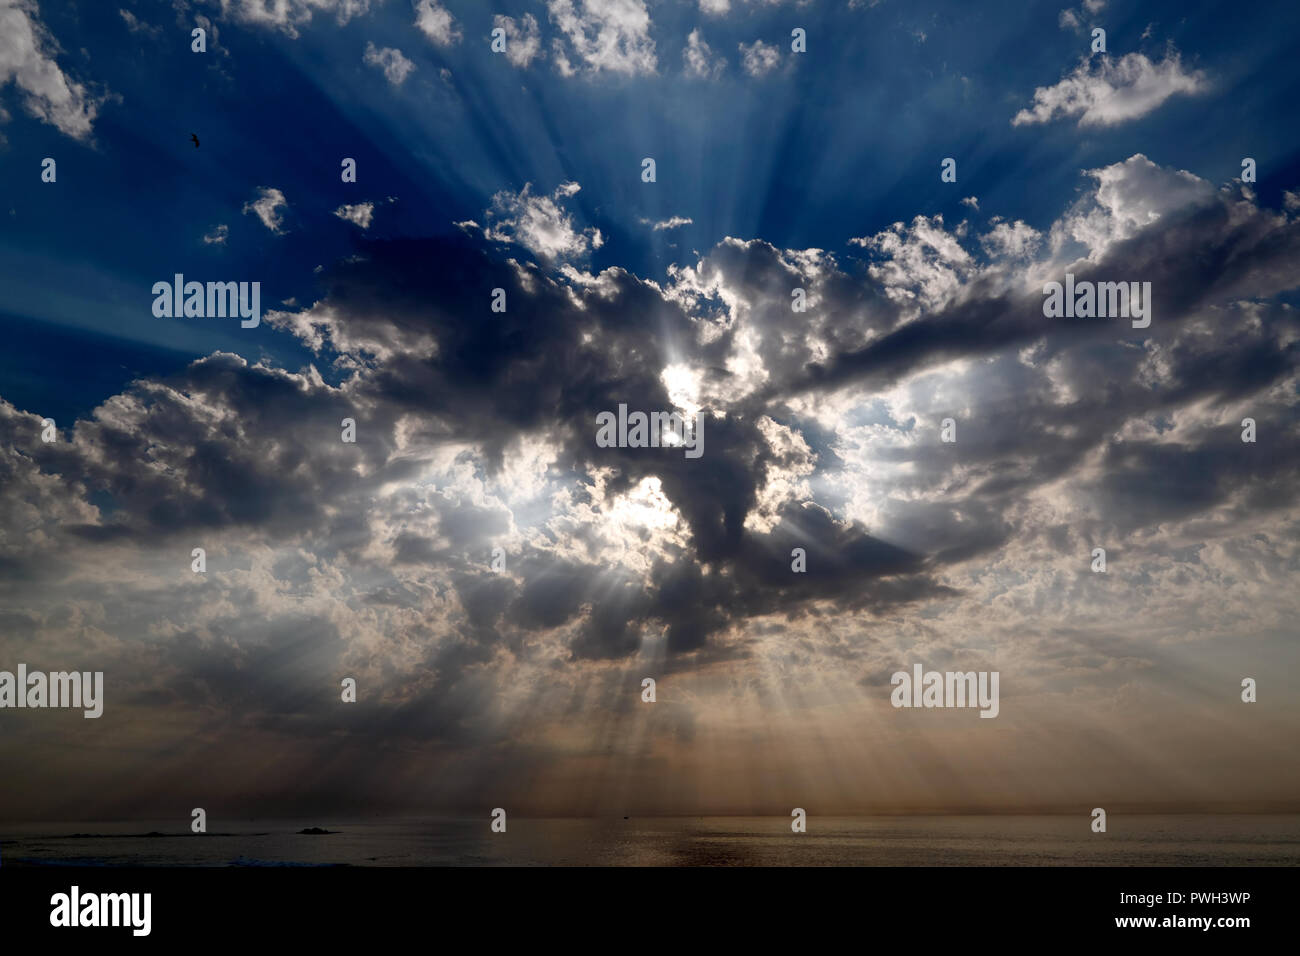 Real dark sky with sun and sunbeams in the Portuguese Coast - low edition photo - Stock Image